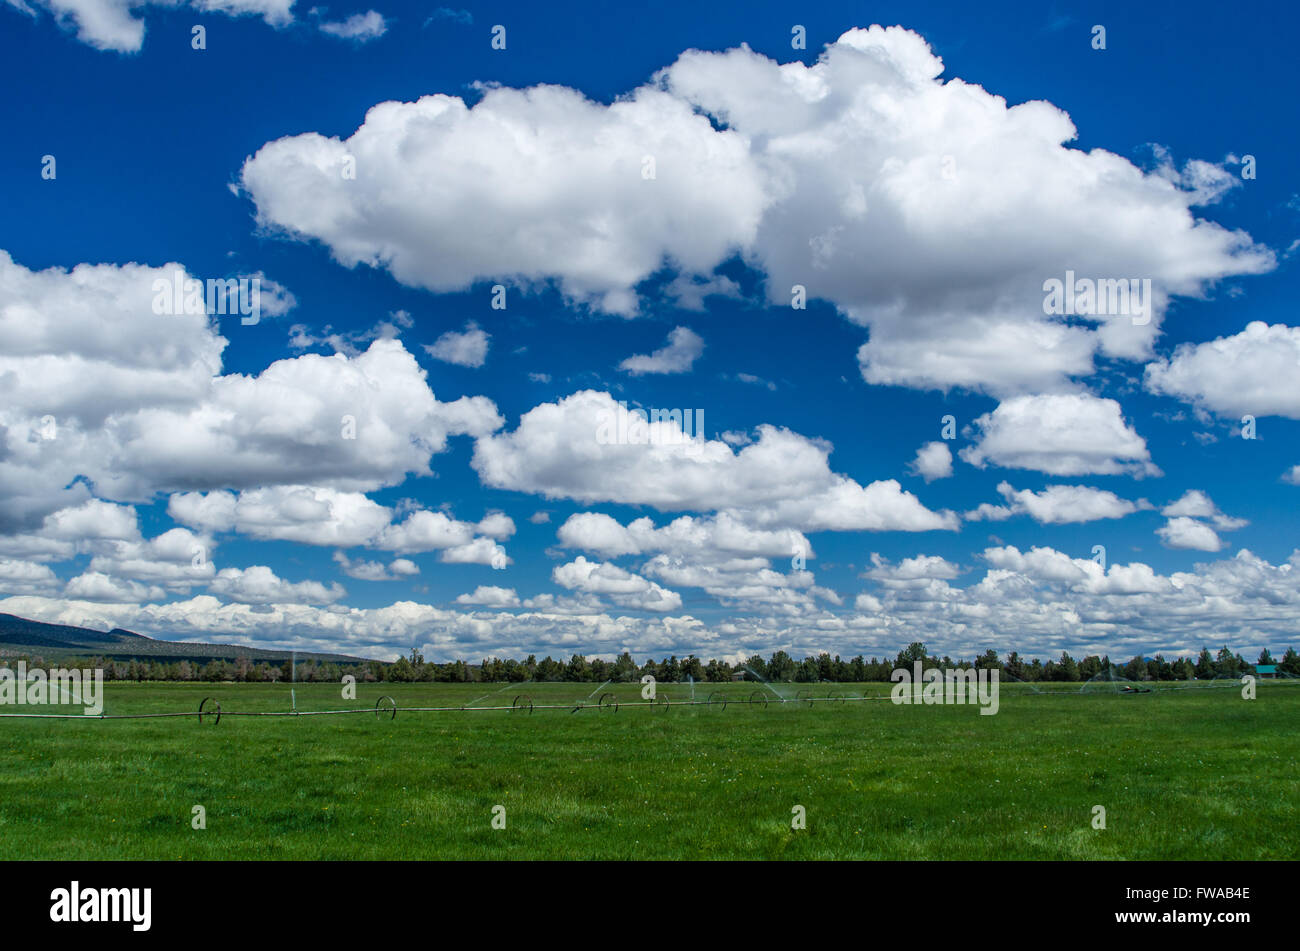 Green pasture being irrigated on a farm in eastern Oregon - Stock Image